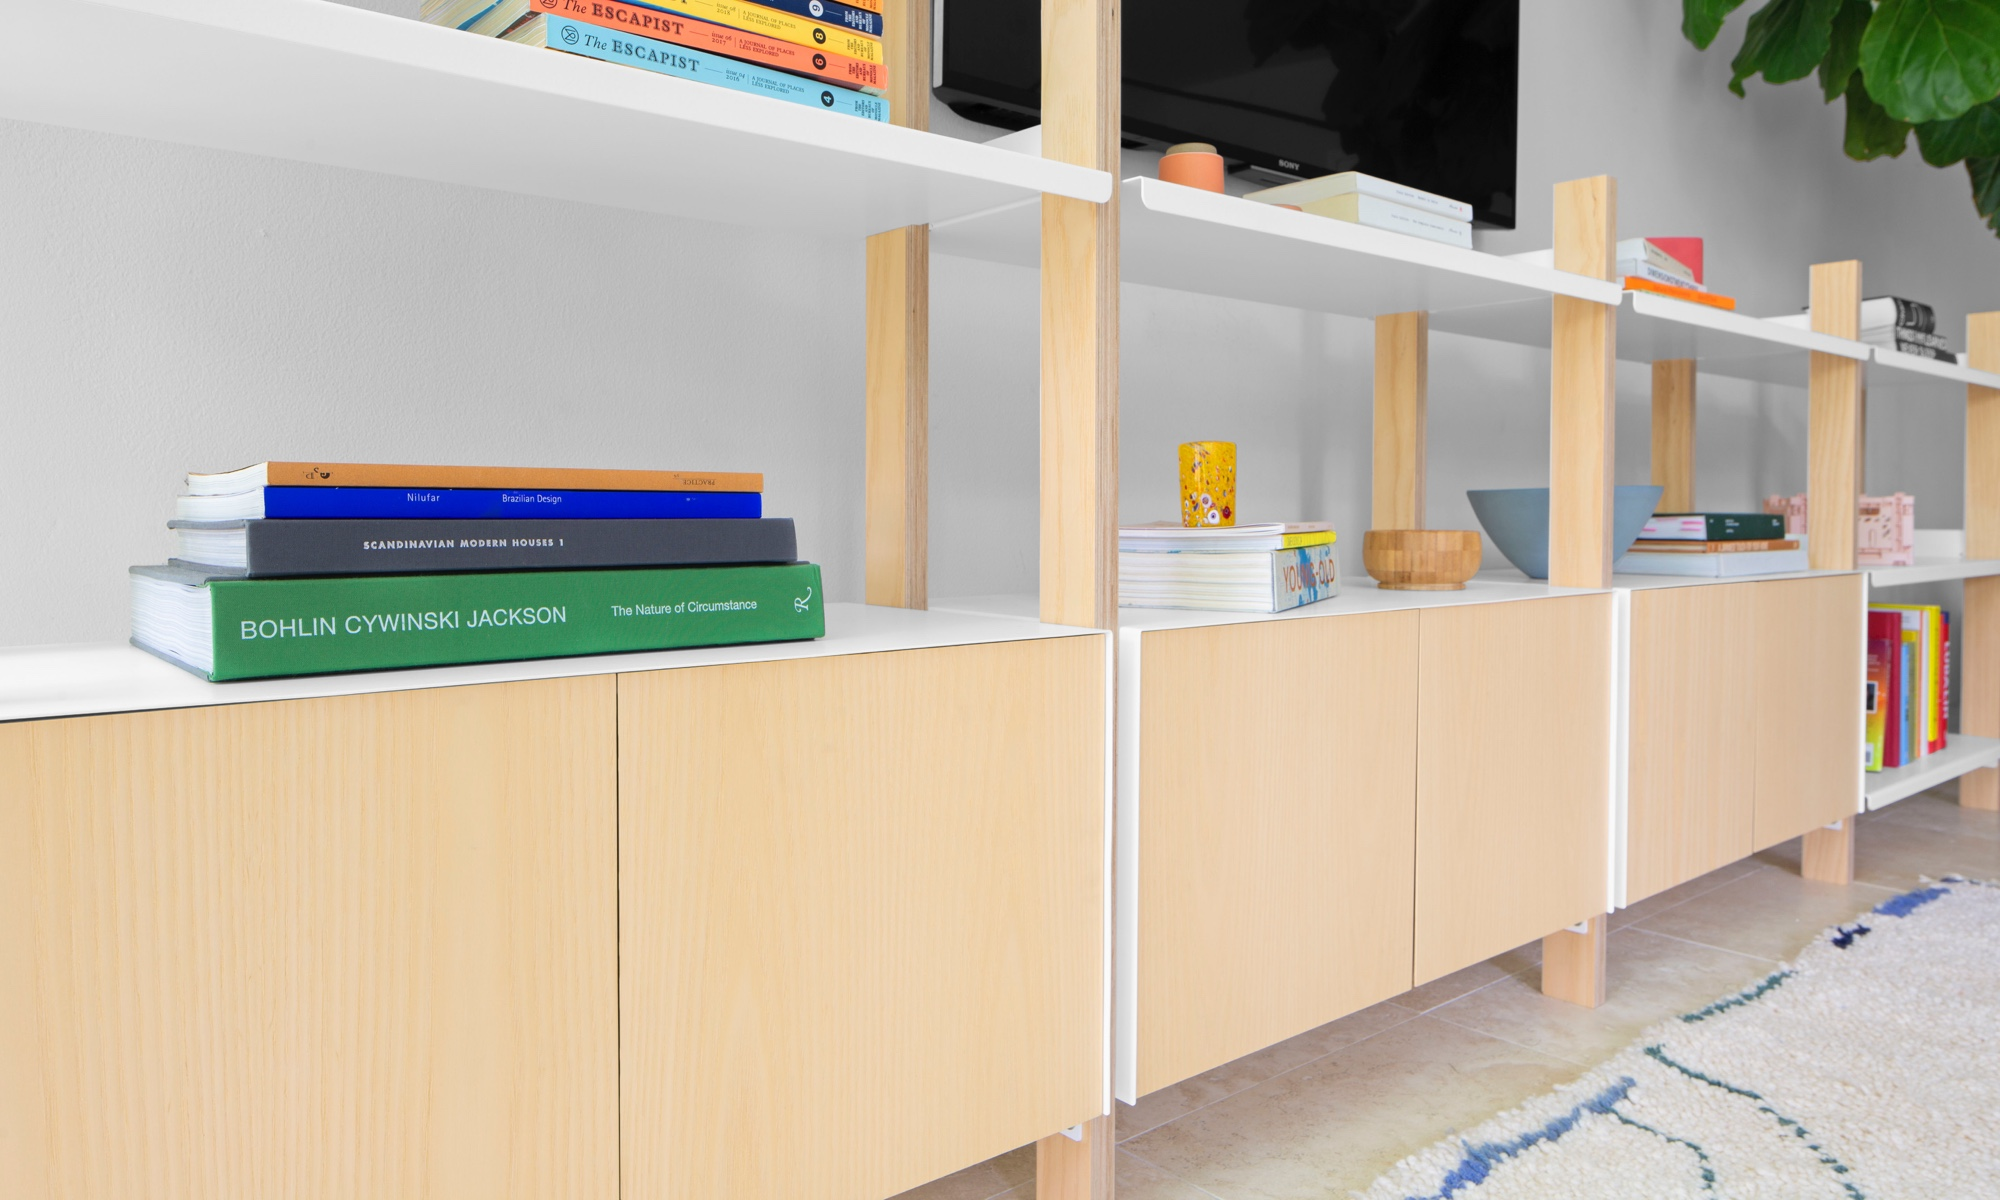 The sleek Cabinet Add-On is the newest addition to our modular Shelving System.